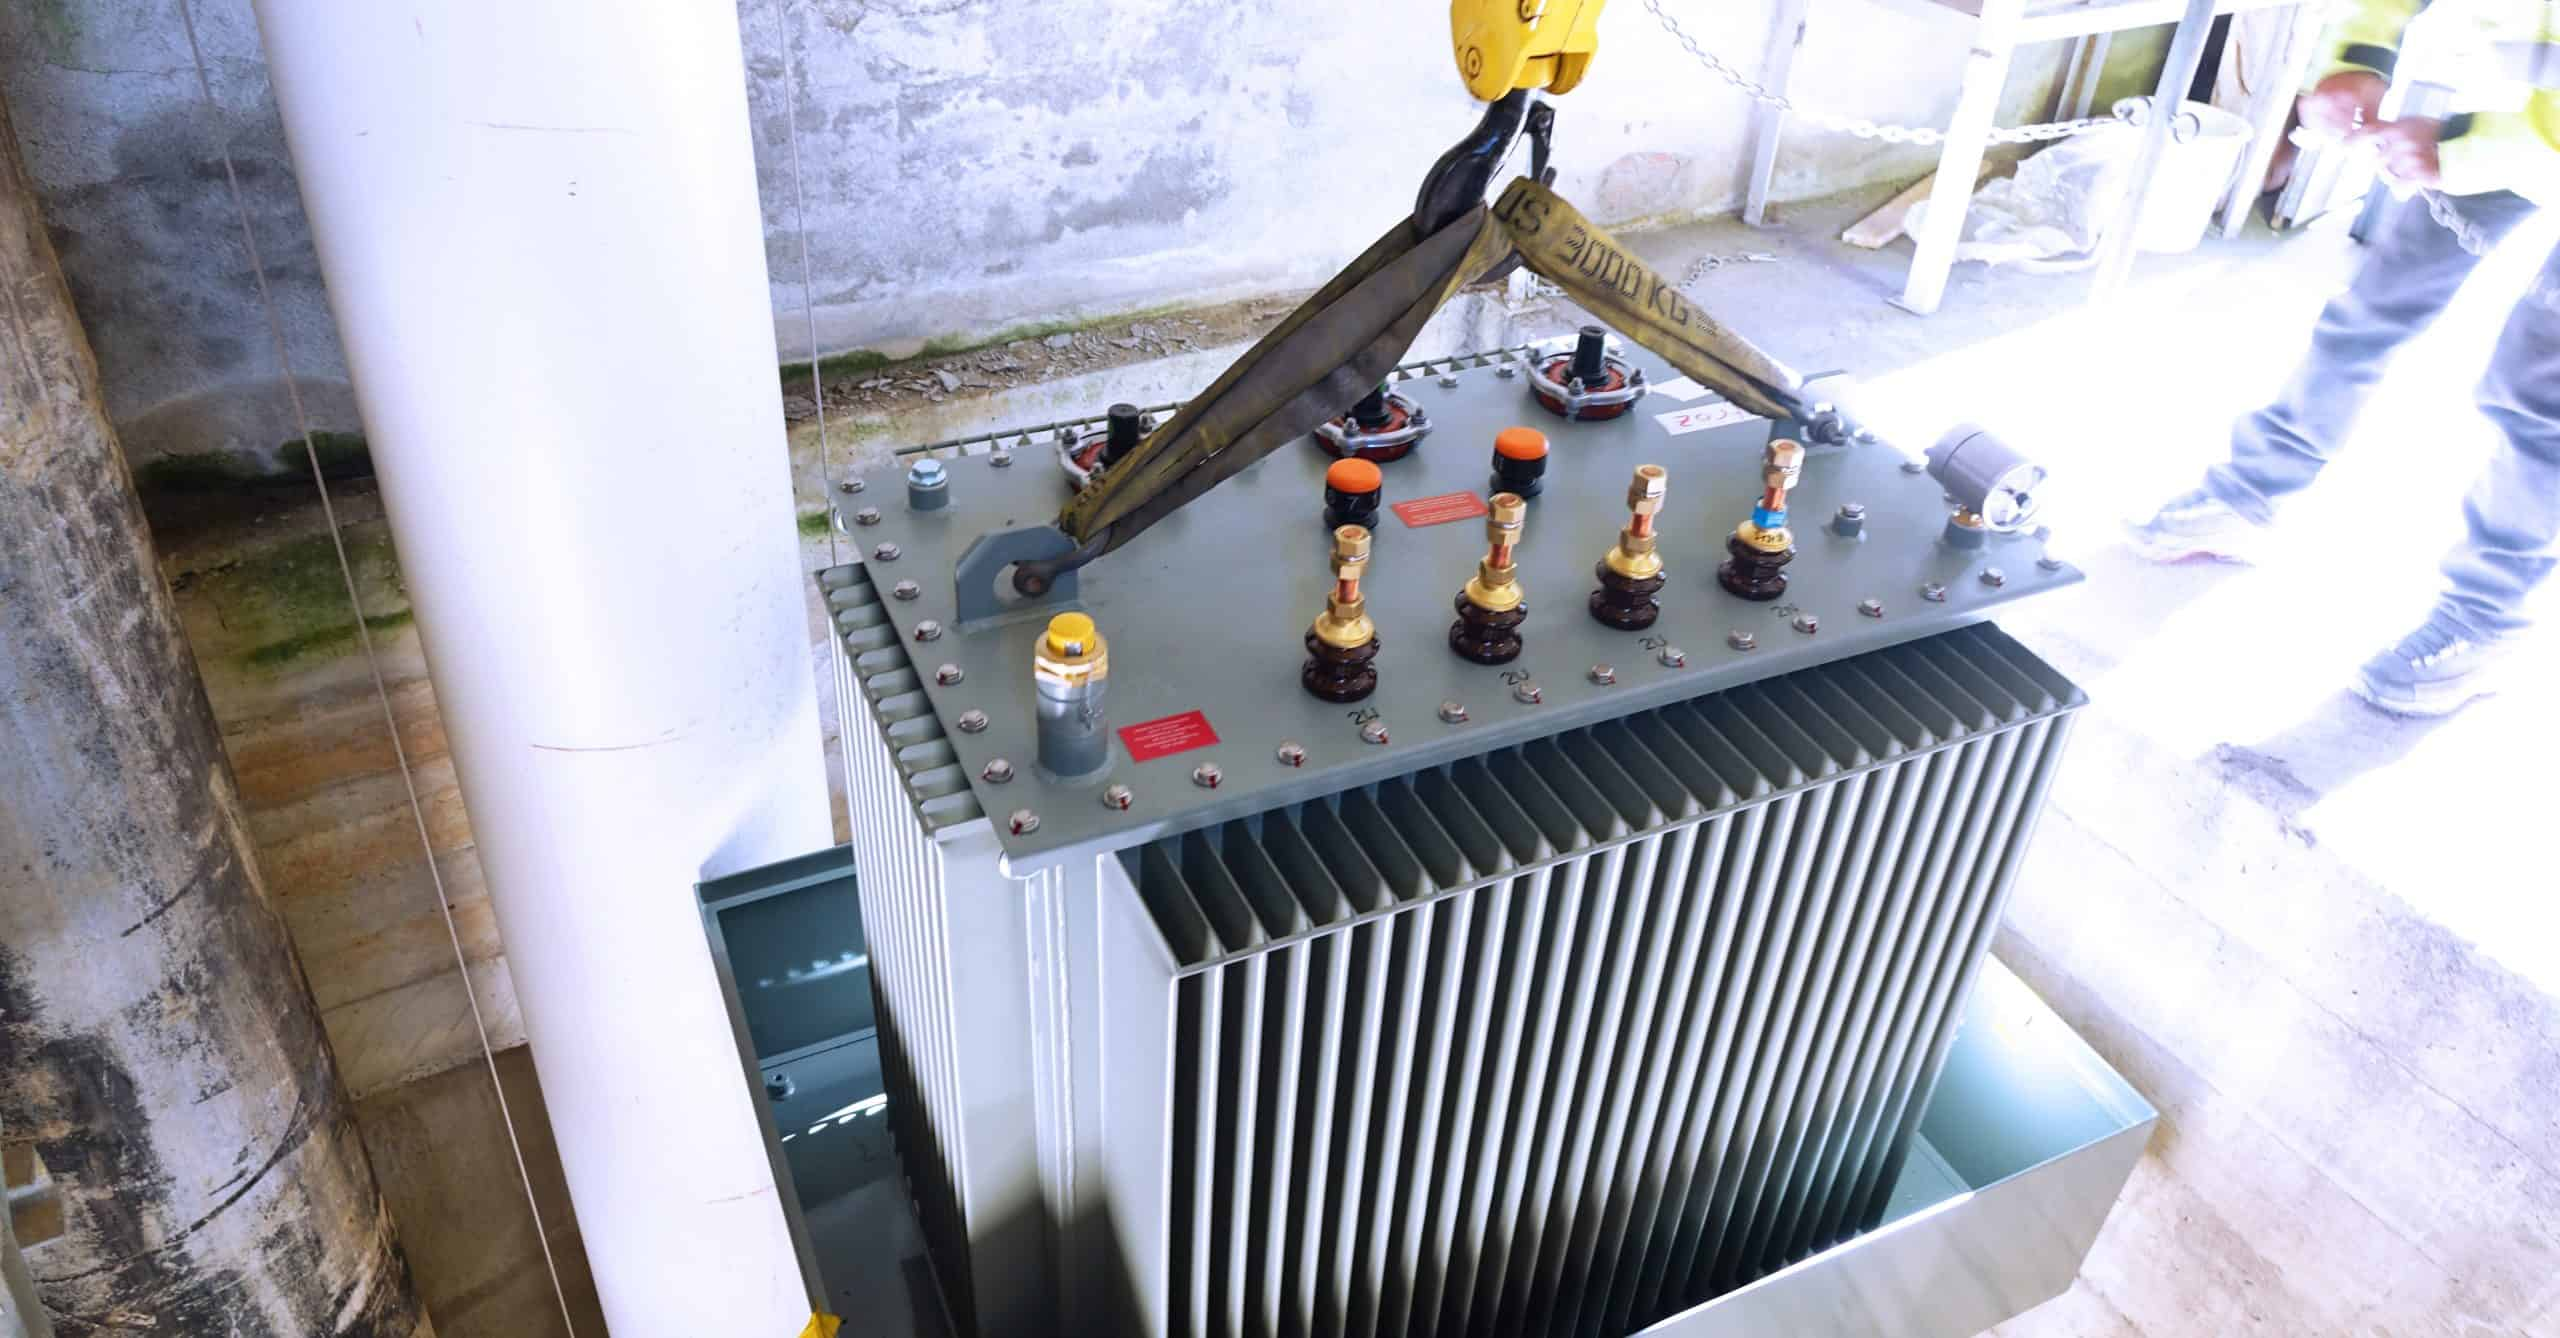 Installation distribution transformer in Switzerland